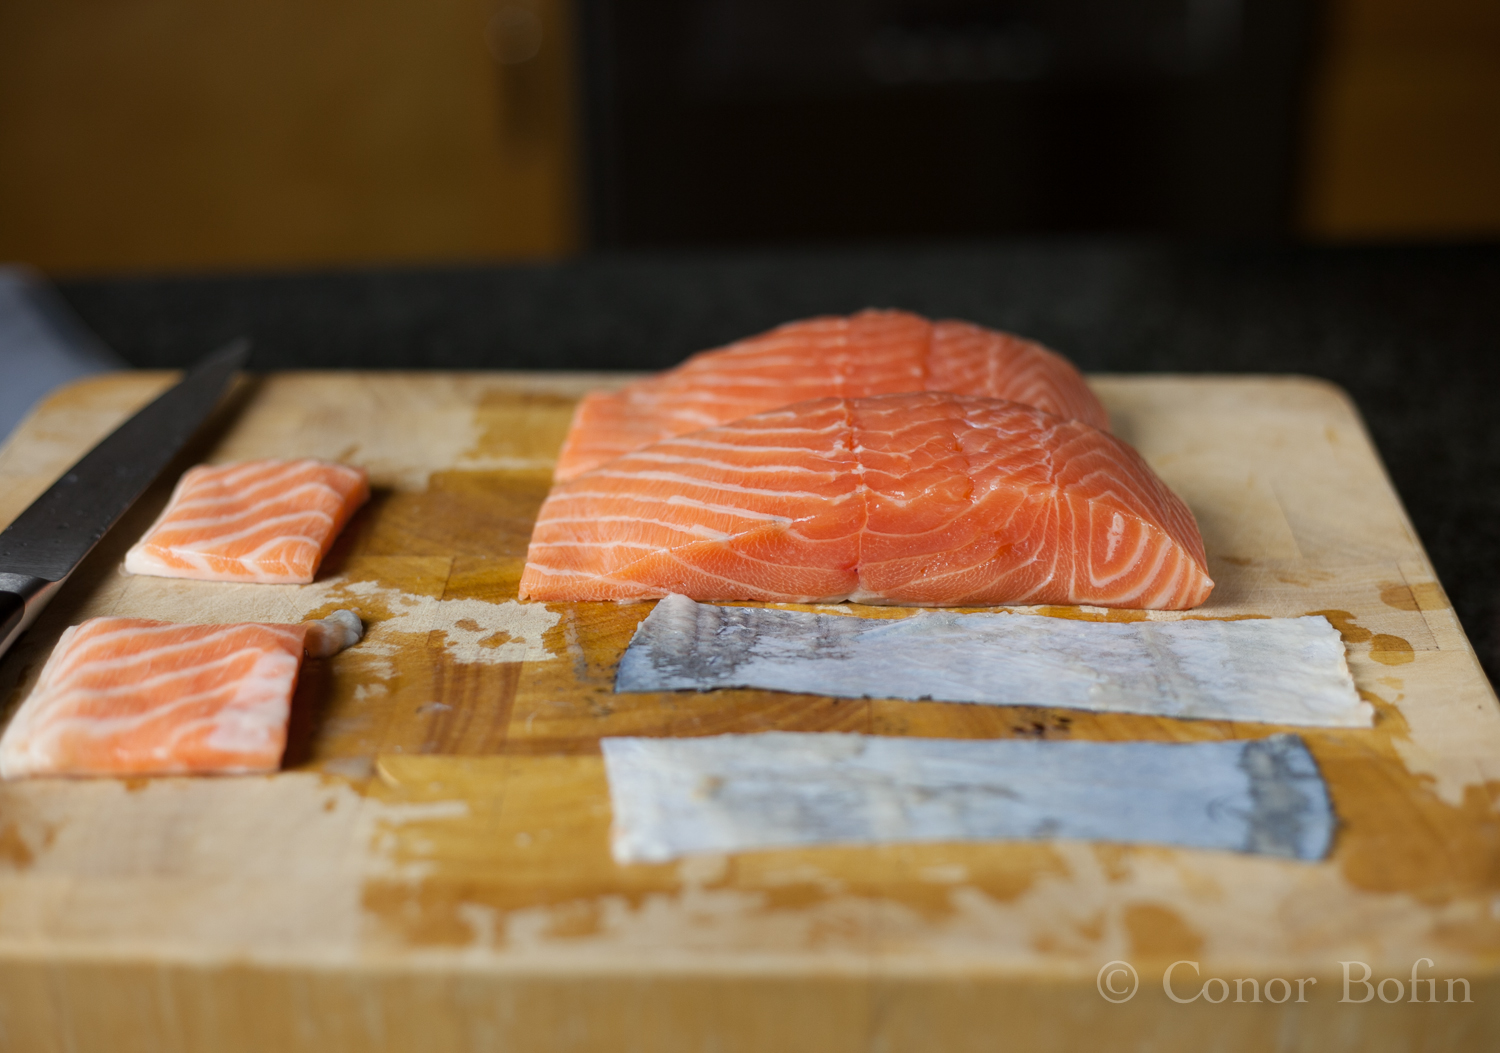 A gratuitous skin and salmon bits shot. Why not?